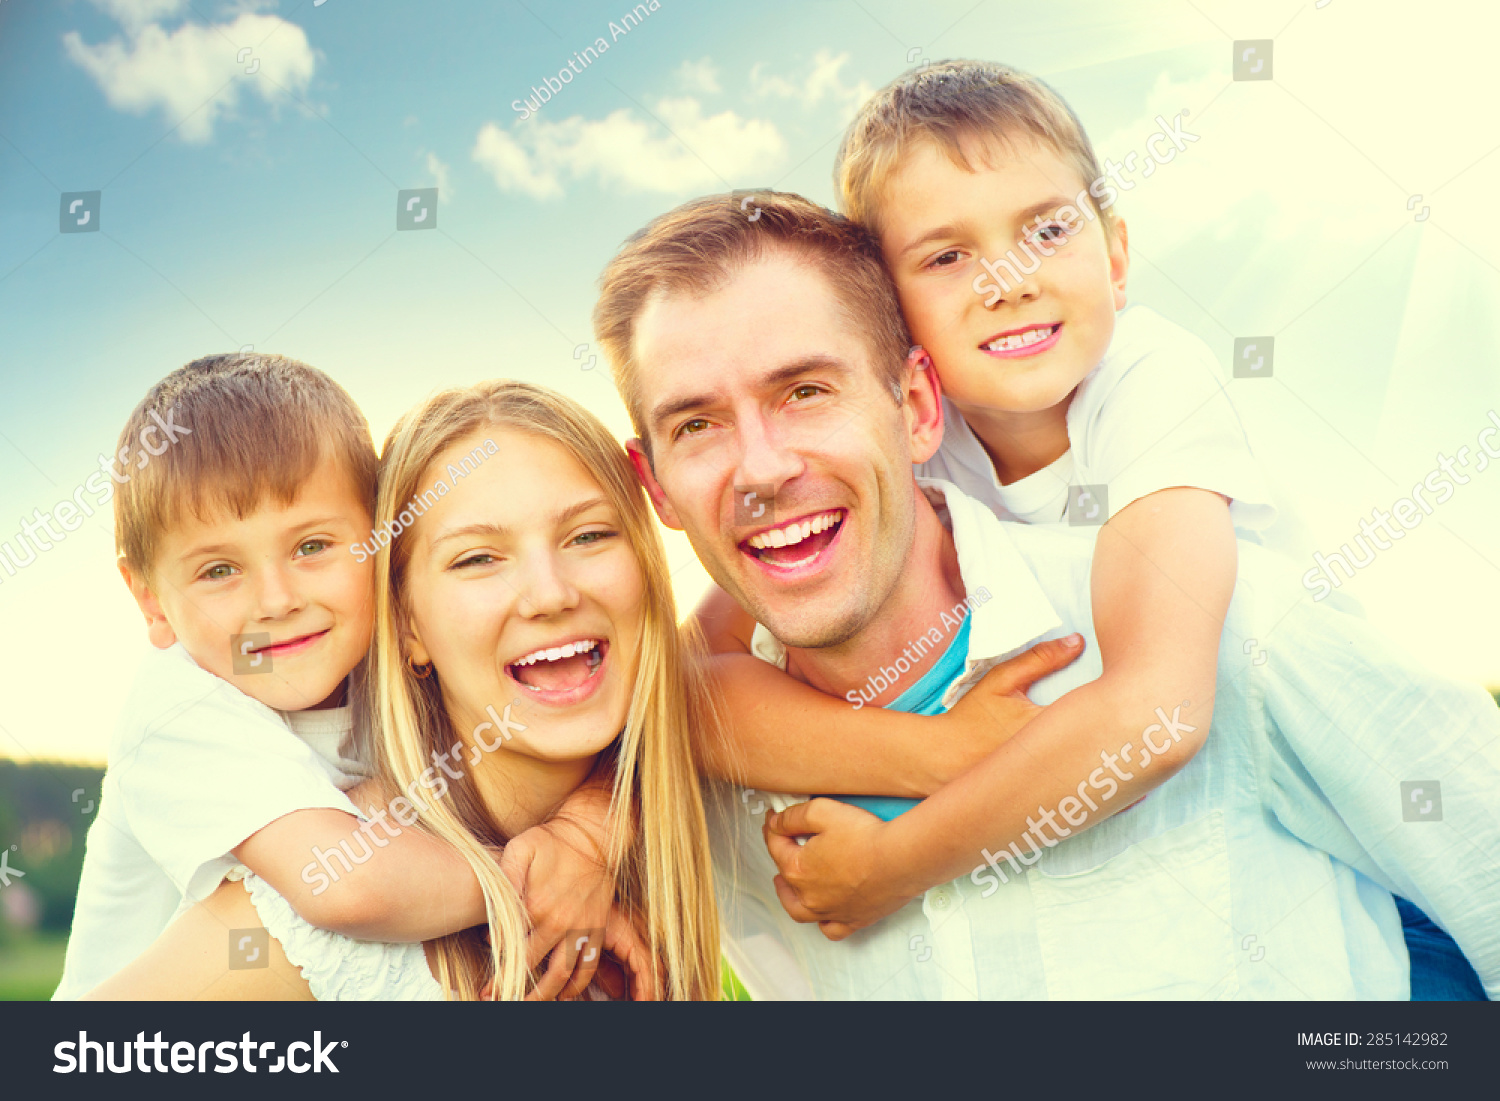 happy joyful young family father mother stock photo 285142982 shutterstock. Black Bedroom Furniture Sets. Home Design Ideas